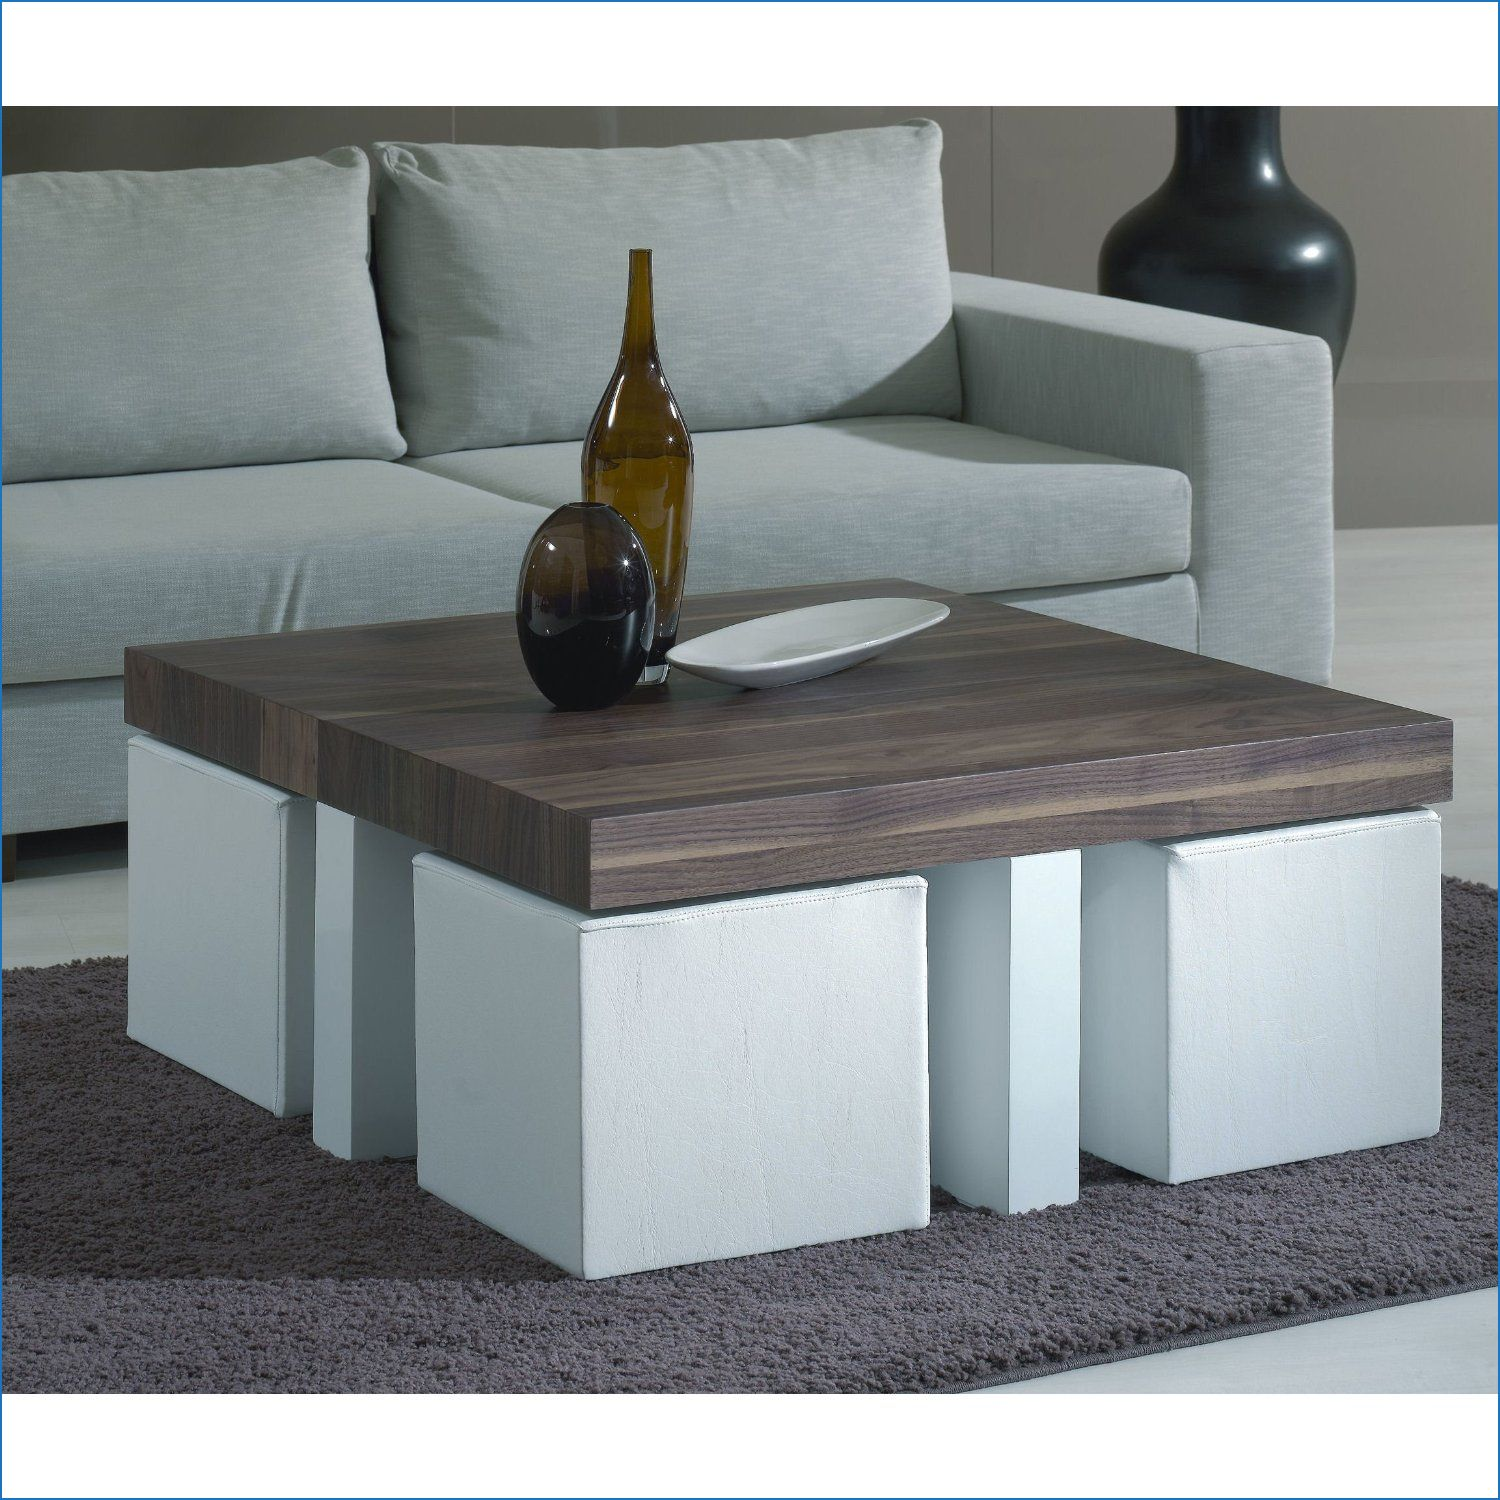 Square Coffee Table With Ottomans Underneath Download Coffee Table With Stools Under Mesa De Centro Convertible Muebles De Sala Modernos Muebles De Madera Sala